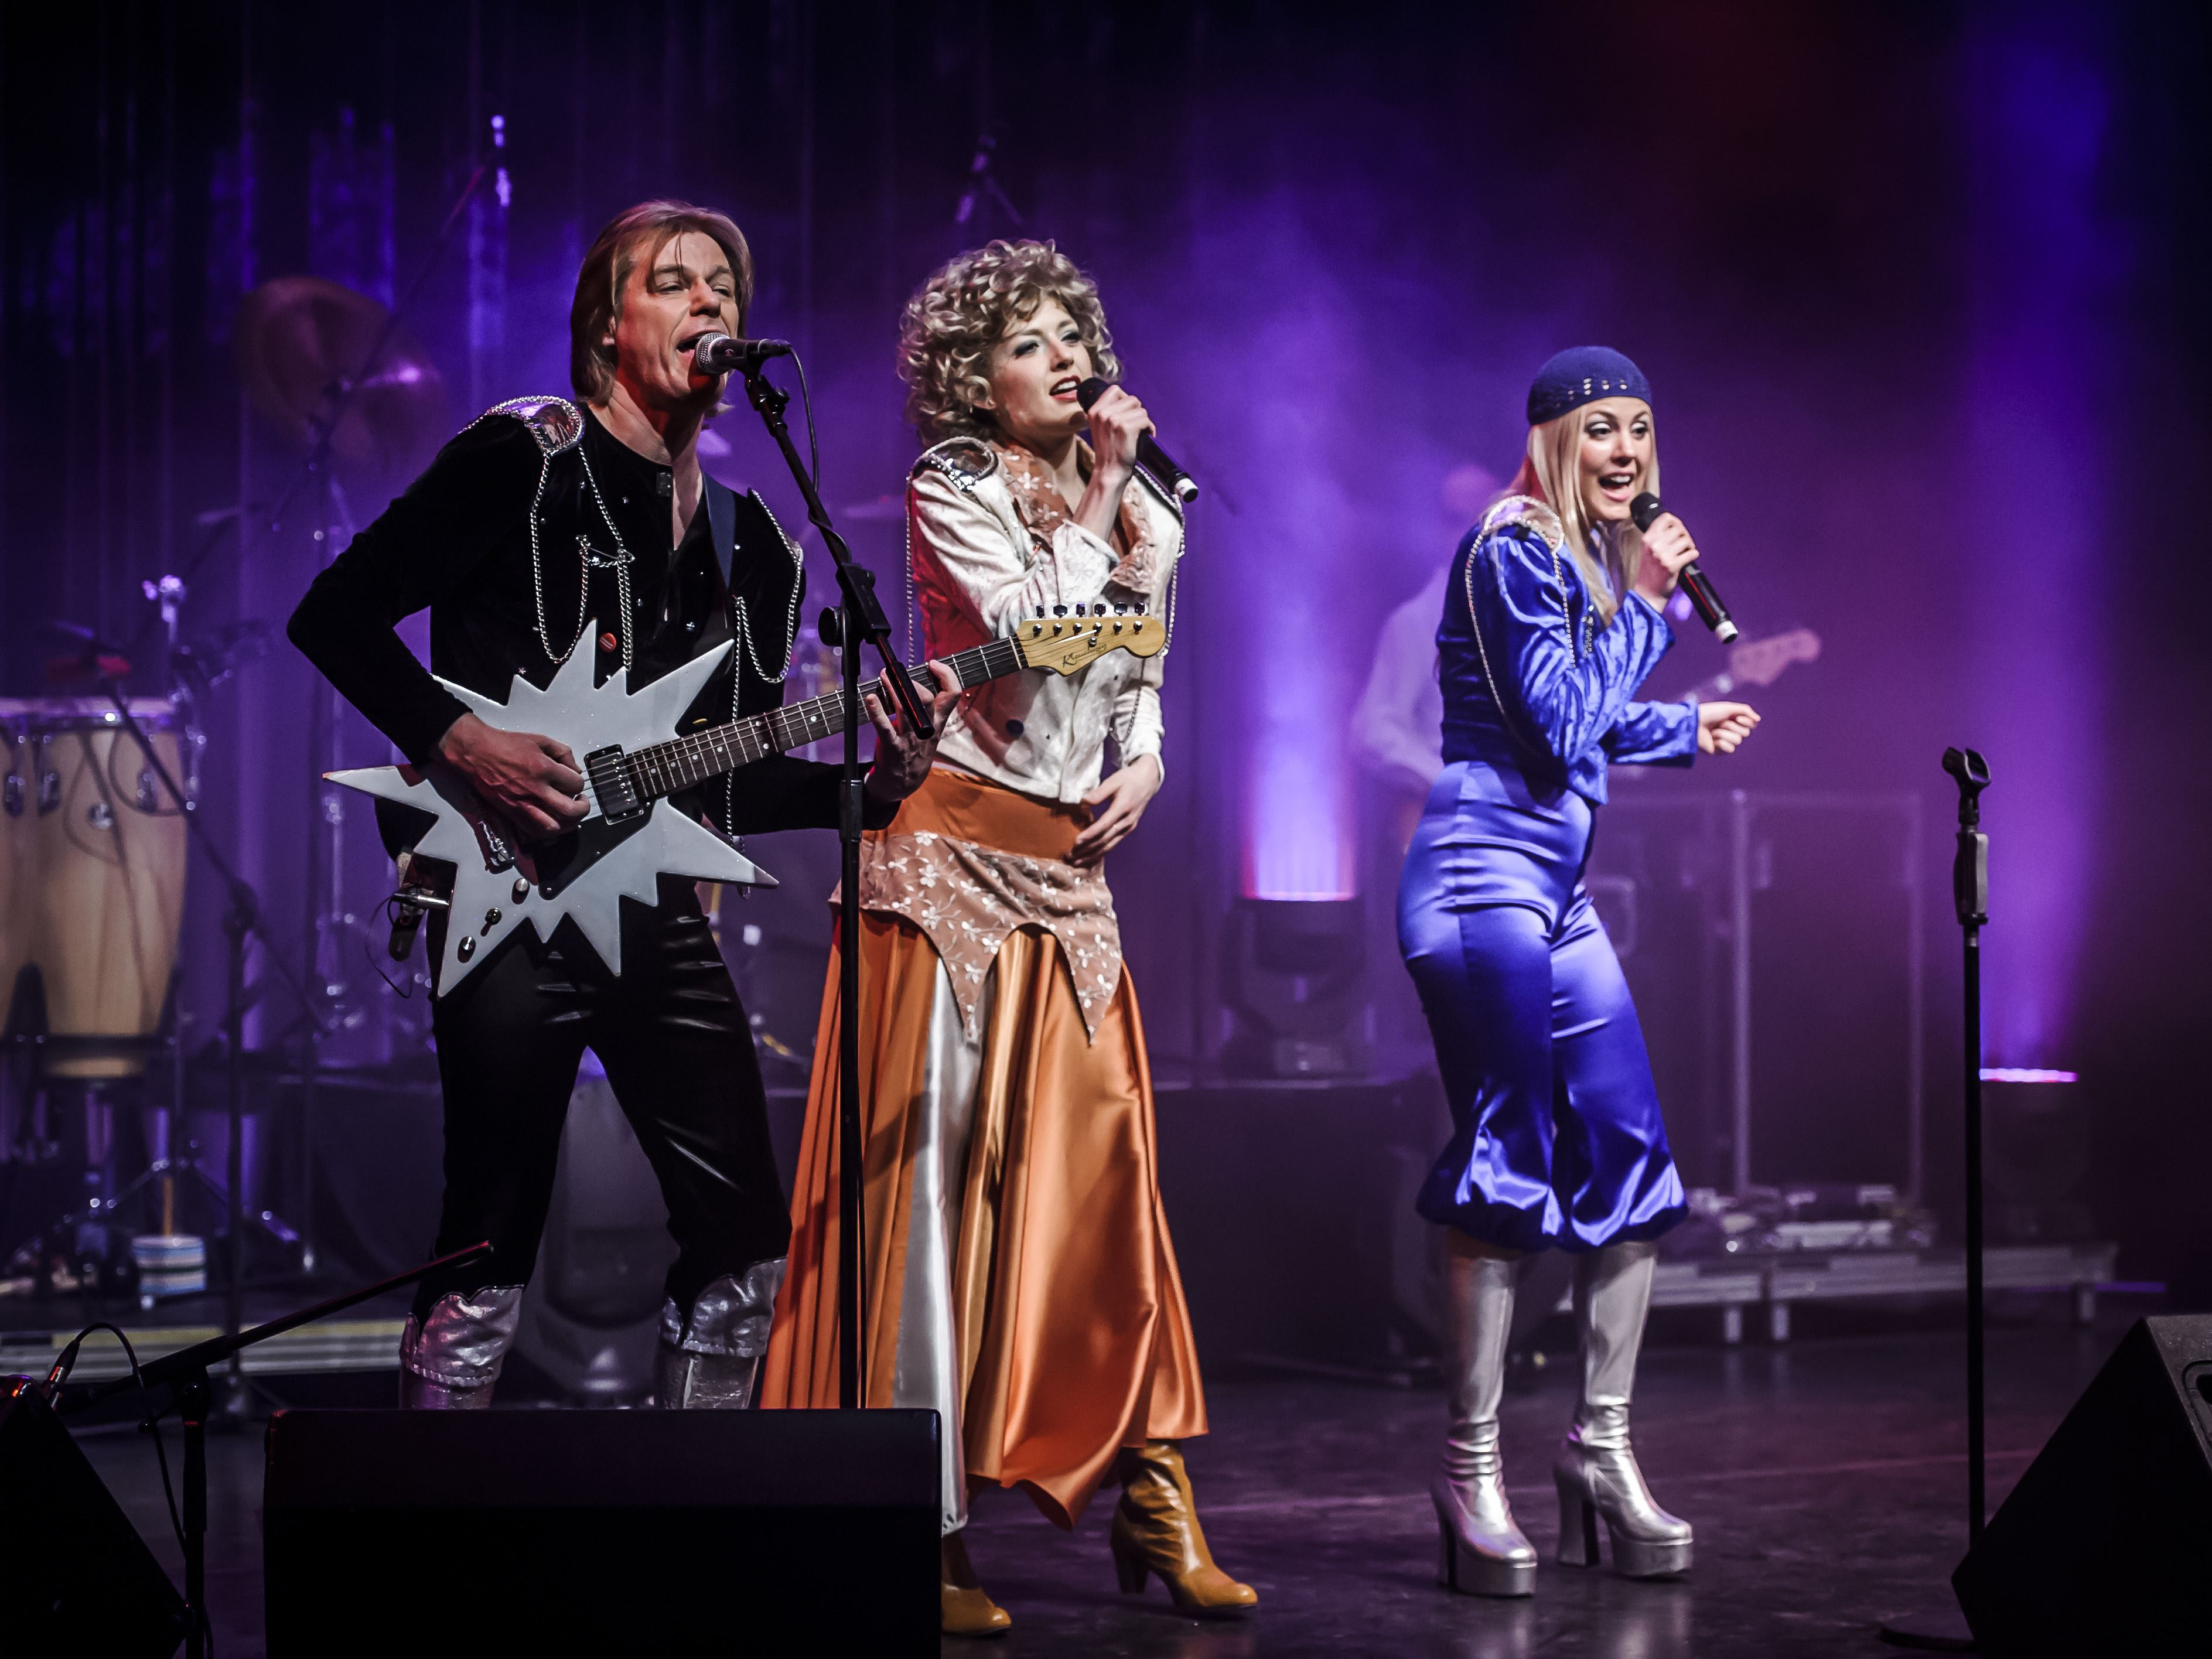 Swedish Legend - Absolut ABBA Tribute. Special guest: Harpo (Moviestar)